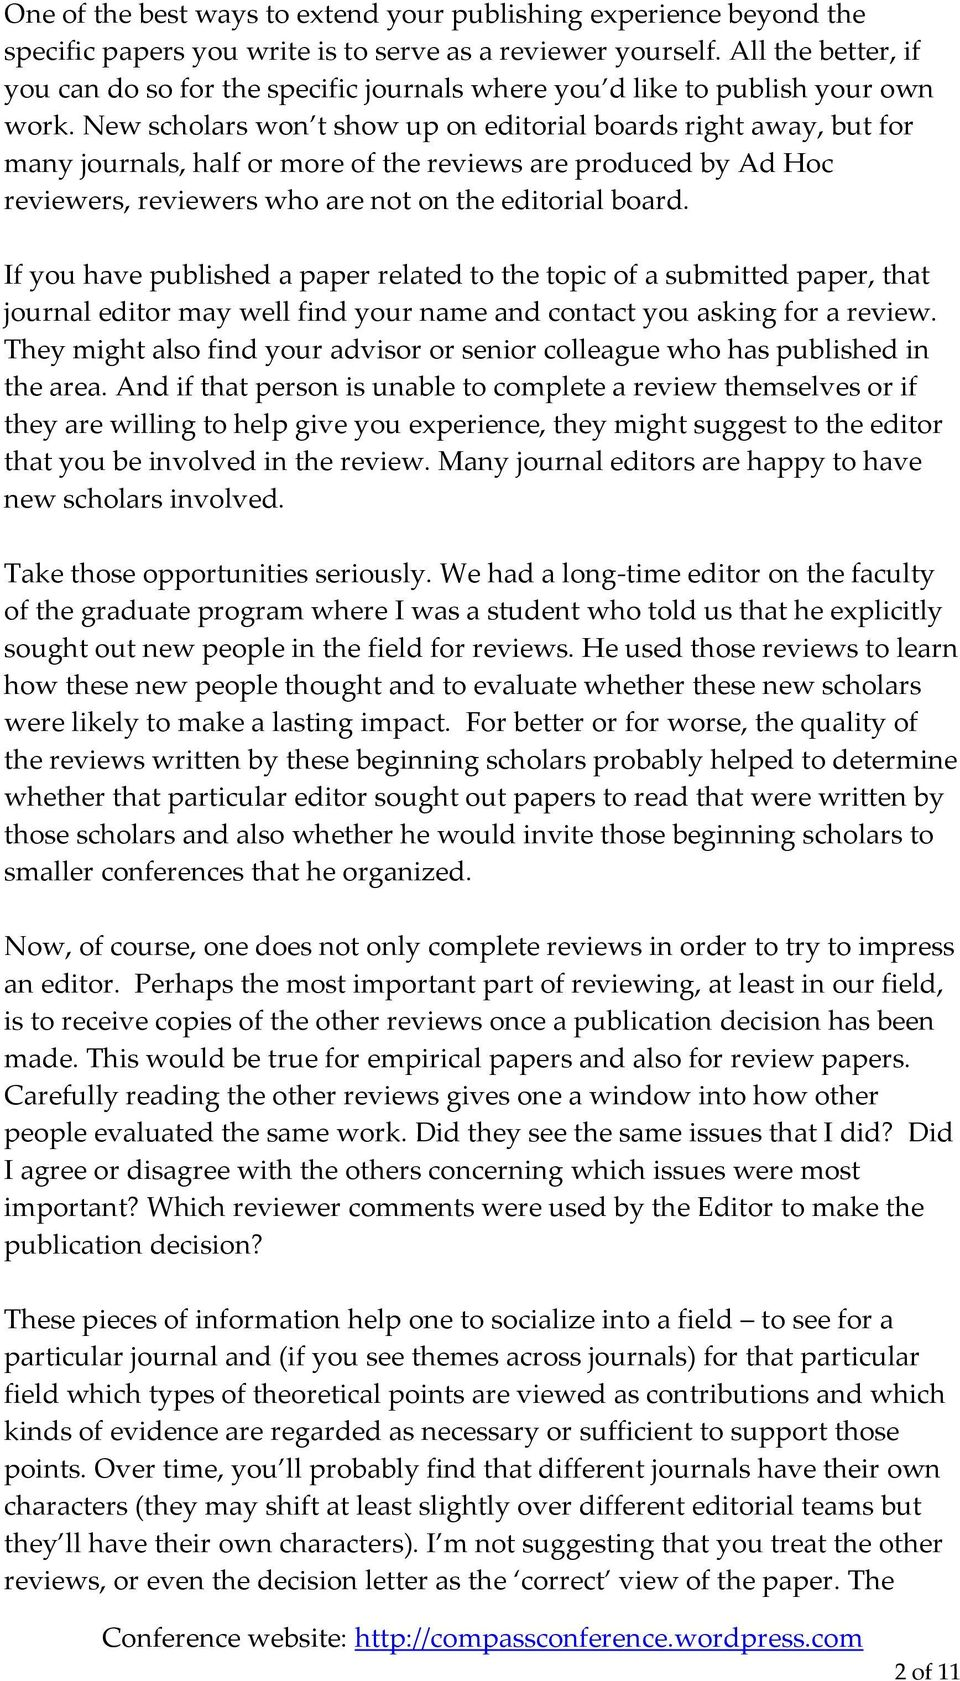 New scholars won t show up on editorial boards right away, but for many journals, half or more of the reviews are produced by Ad Hoc reviewers, reviewers who are not on the editorial board.